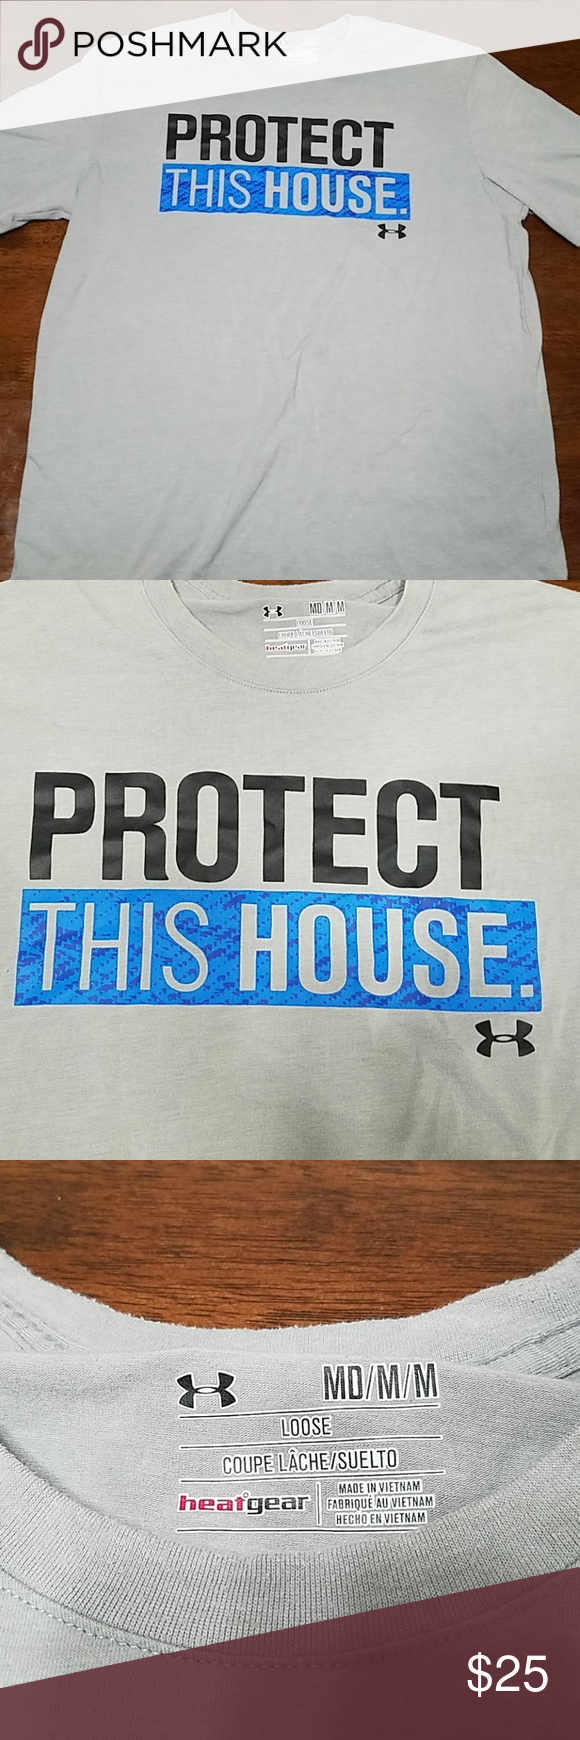 6d10f2db Under Armour protect the house t-shirt Under Armour protect the house t- shirt men's size medium. Great any Under Armour fan in your house!!